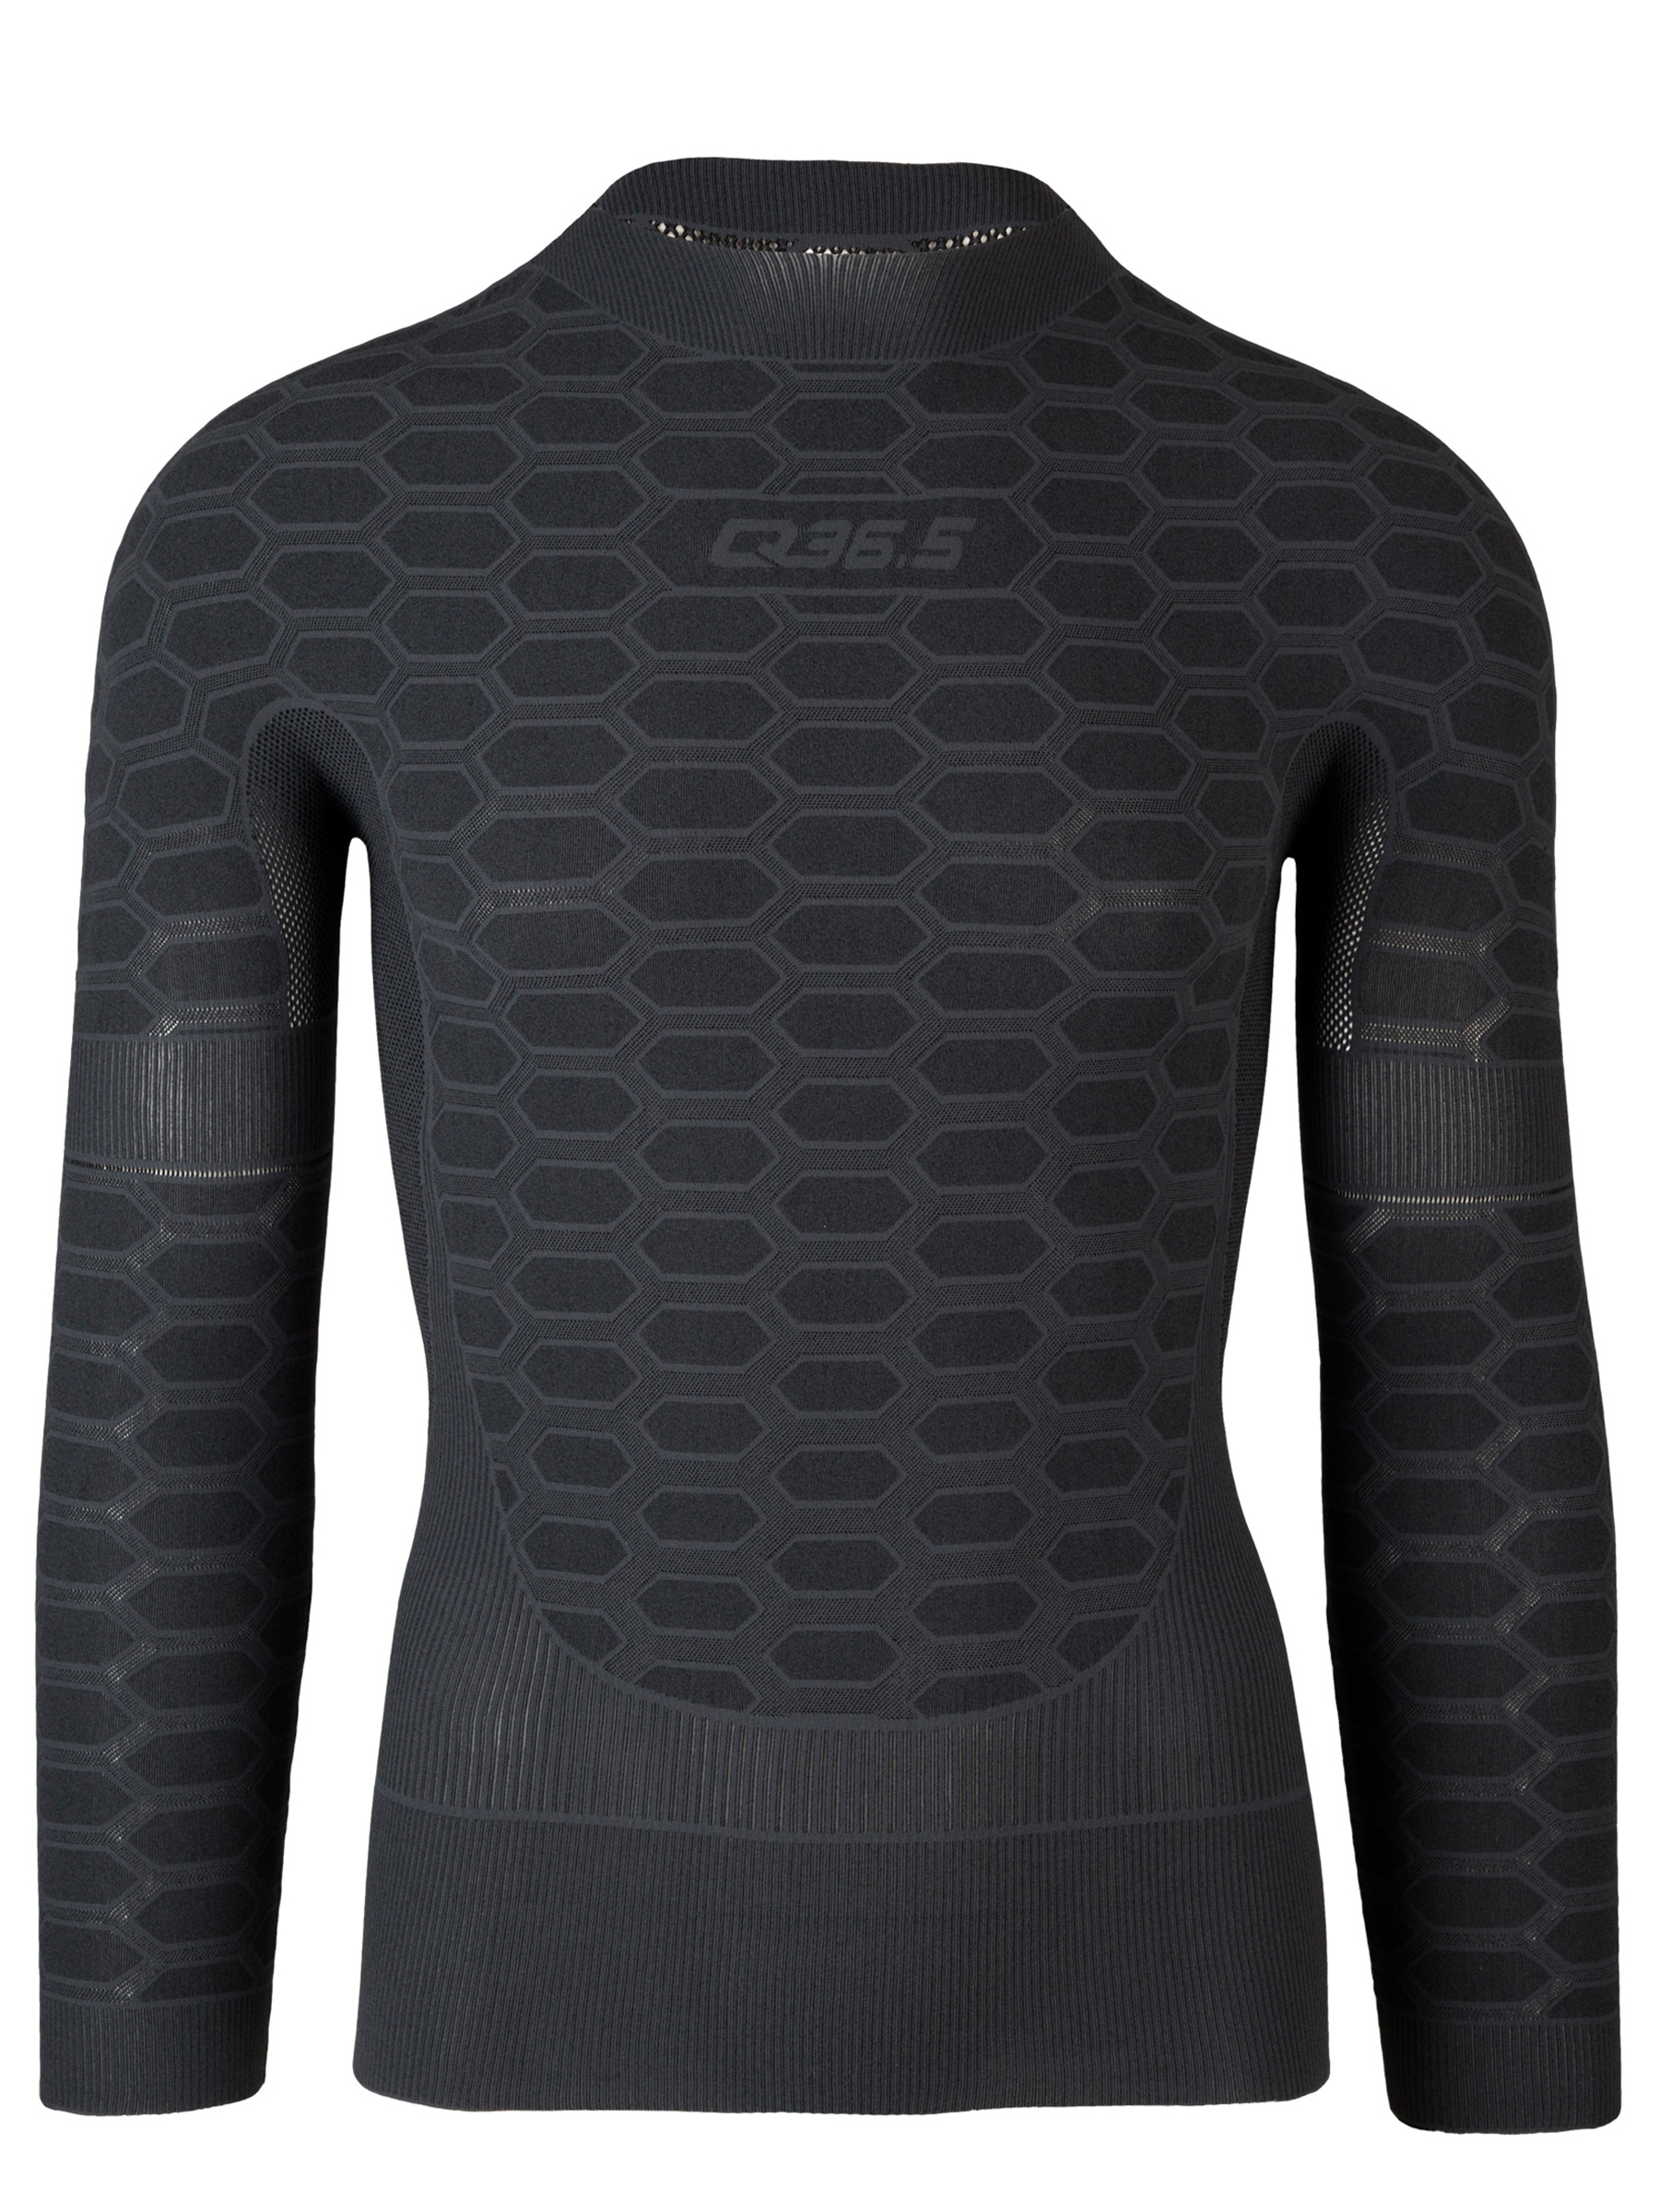 Q36.5 Antracite Long Sleeve Baselayer Front